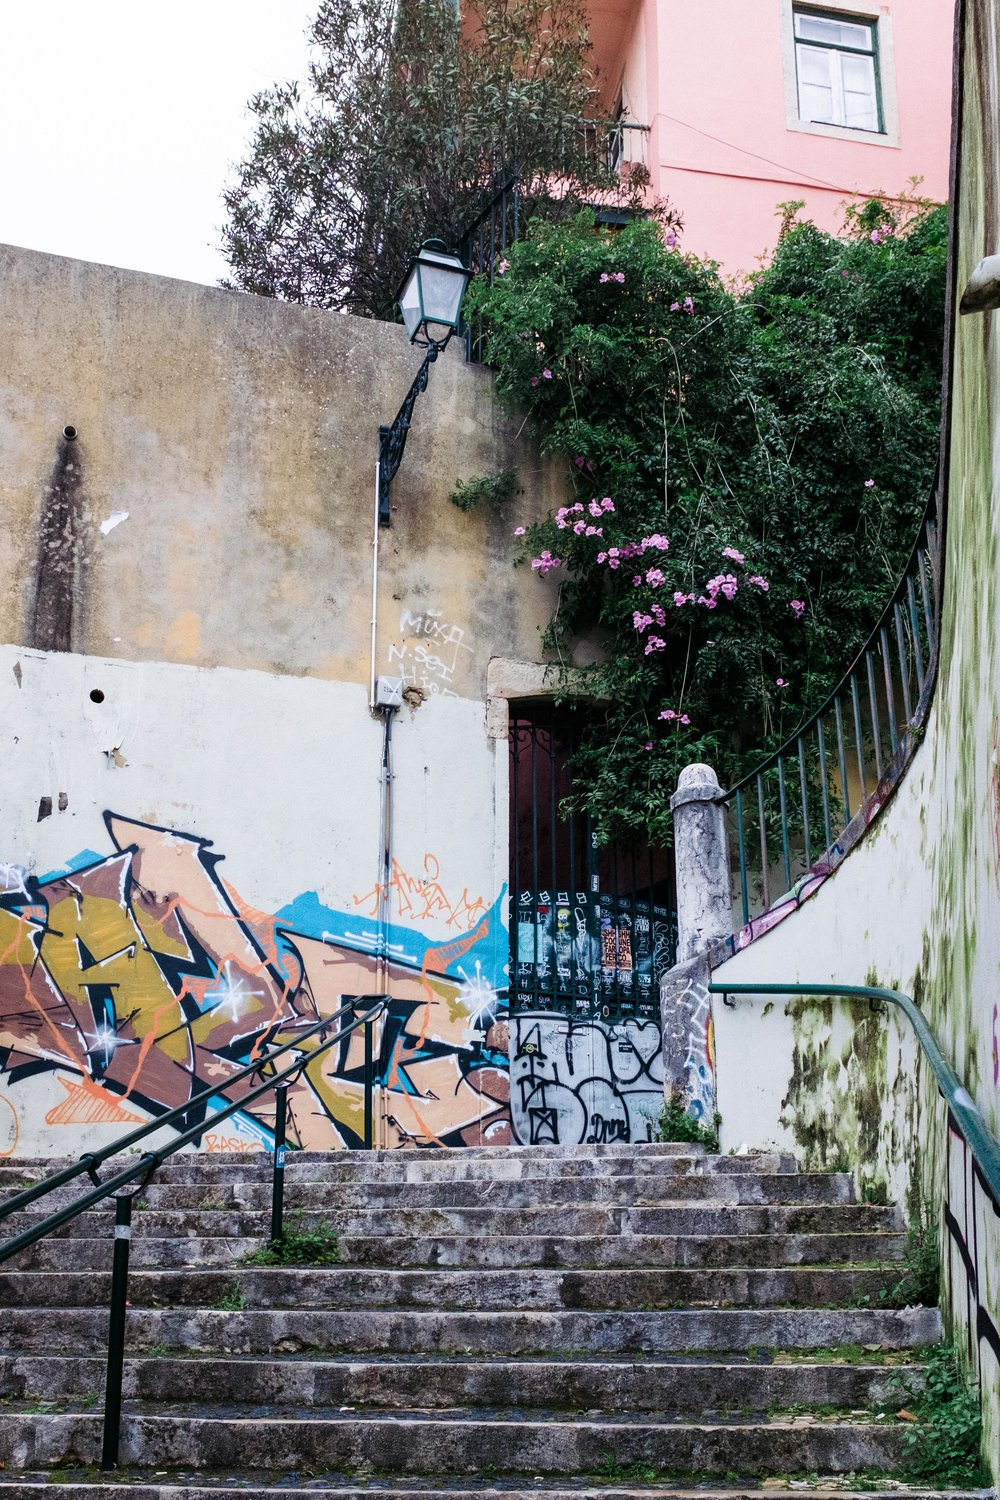 these streets were made for wandering - the best way to see lisbon is on foot. the narrow streets wind and climb, presenting opportunities for discovery (and breathtaking views) at every turn. check out the neighborhoods of alfama, mouraria, graca, intendente and baixa for quintessential but authentic experiences.